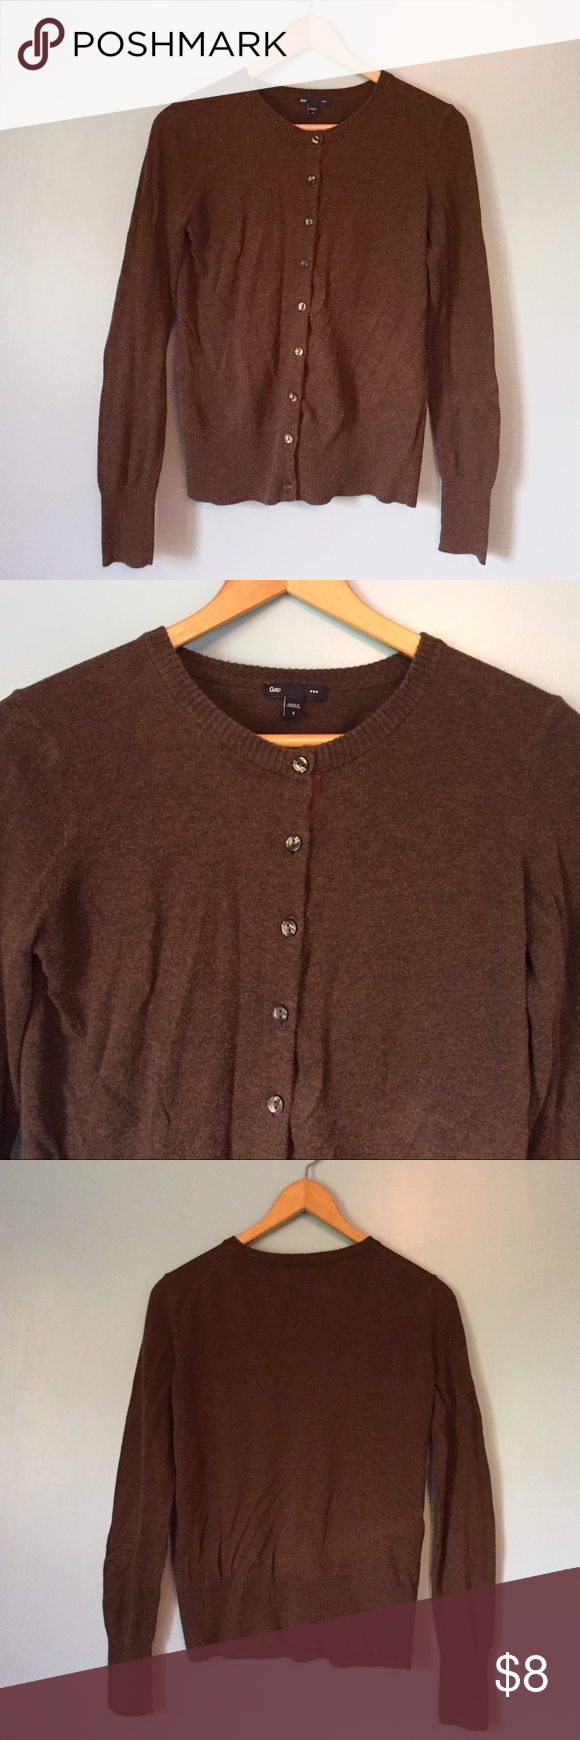 ⭐️SALE⭐ GAP Brown Cardigan | Brown, Conditioning and Customer ...